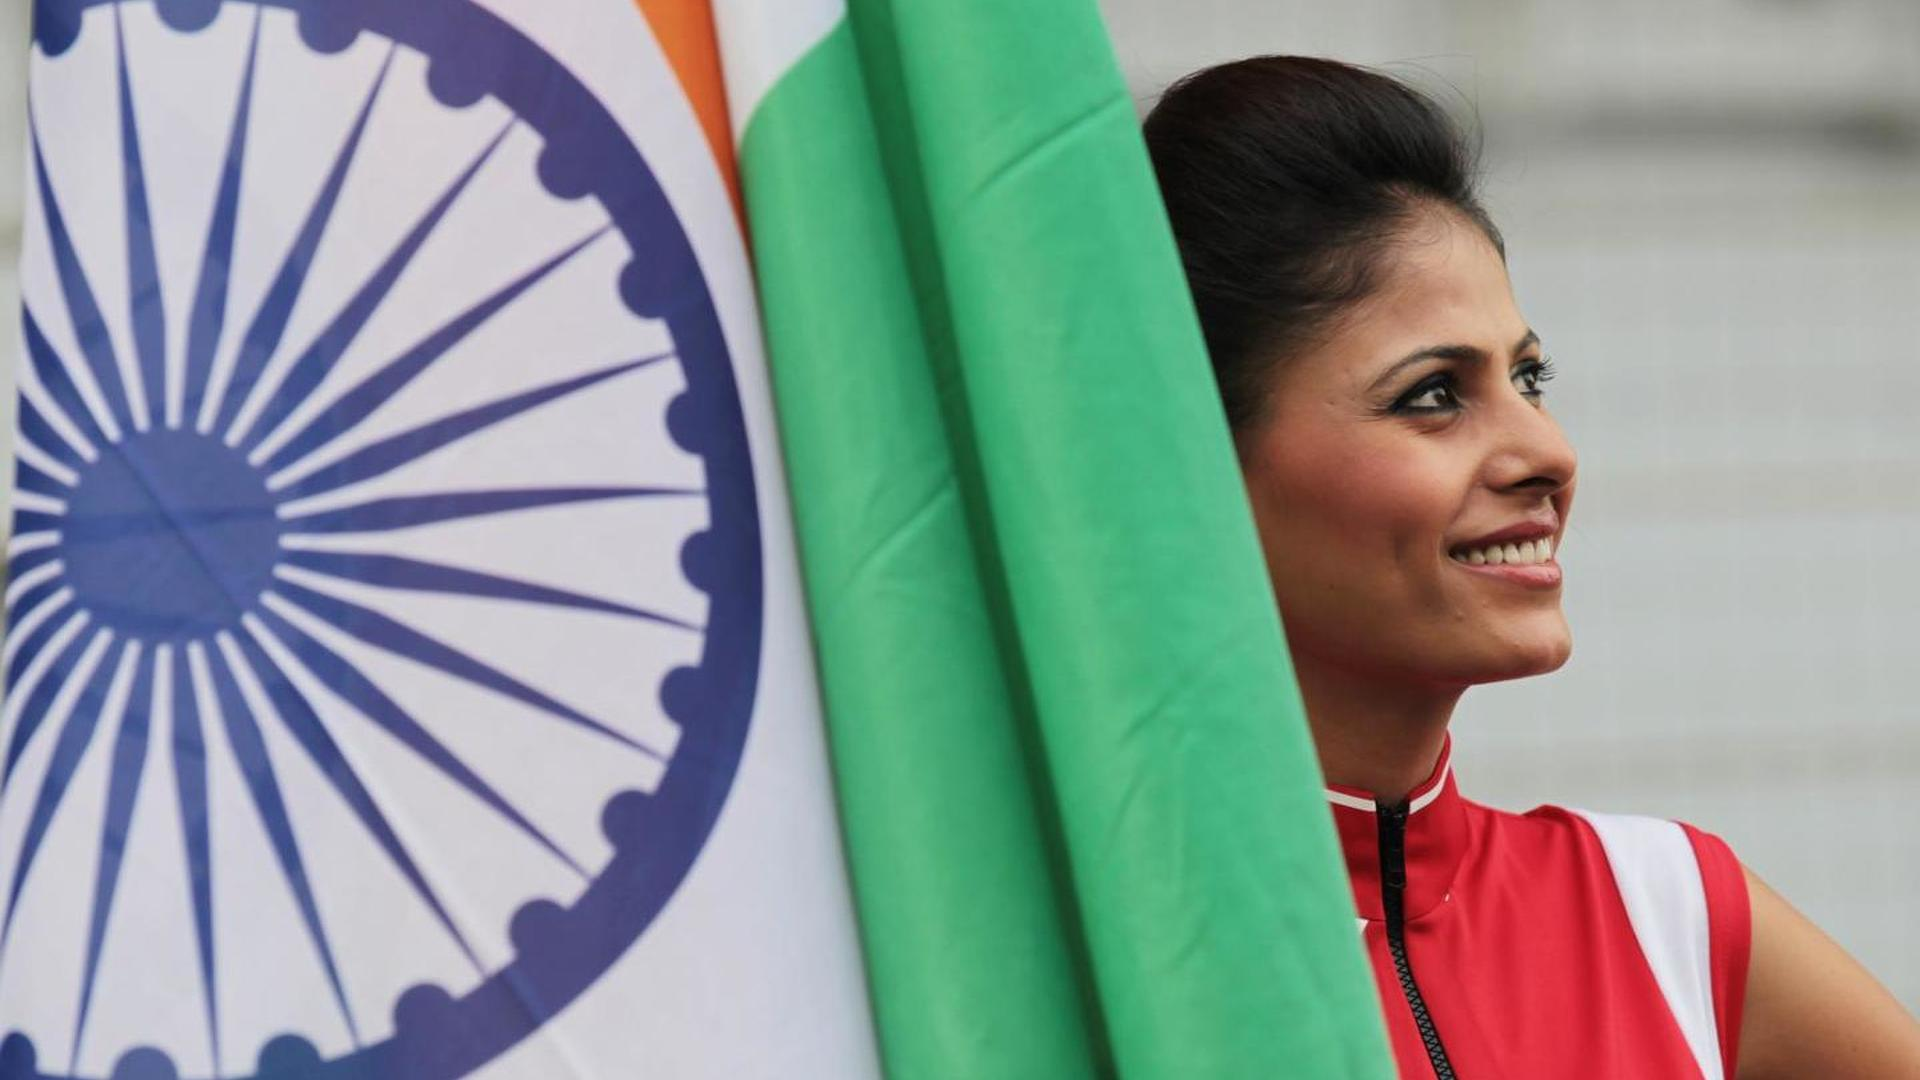 Lady with the Indian Flag